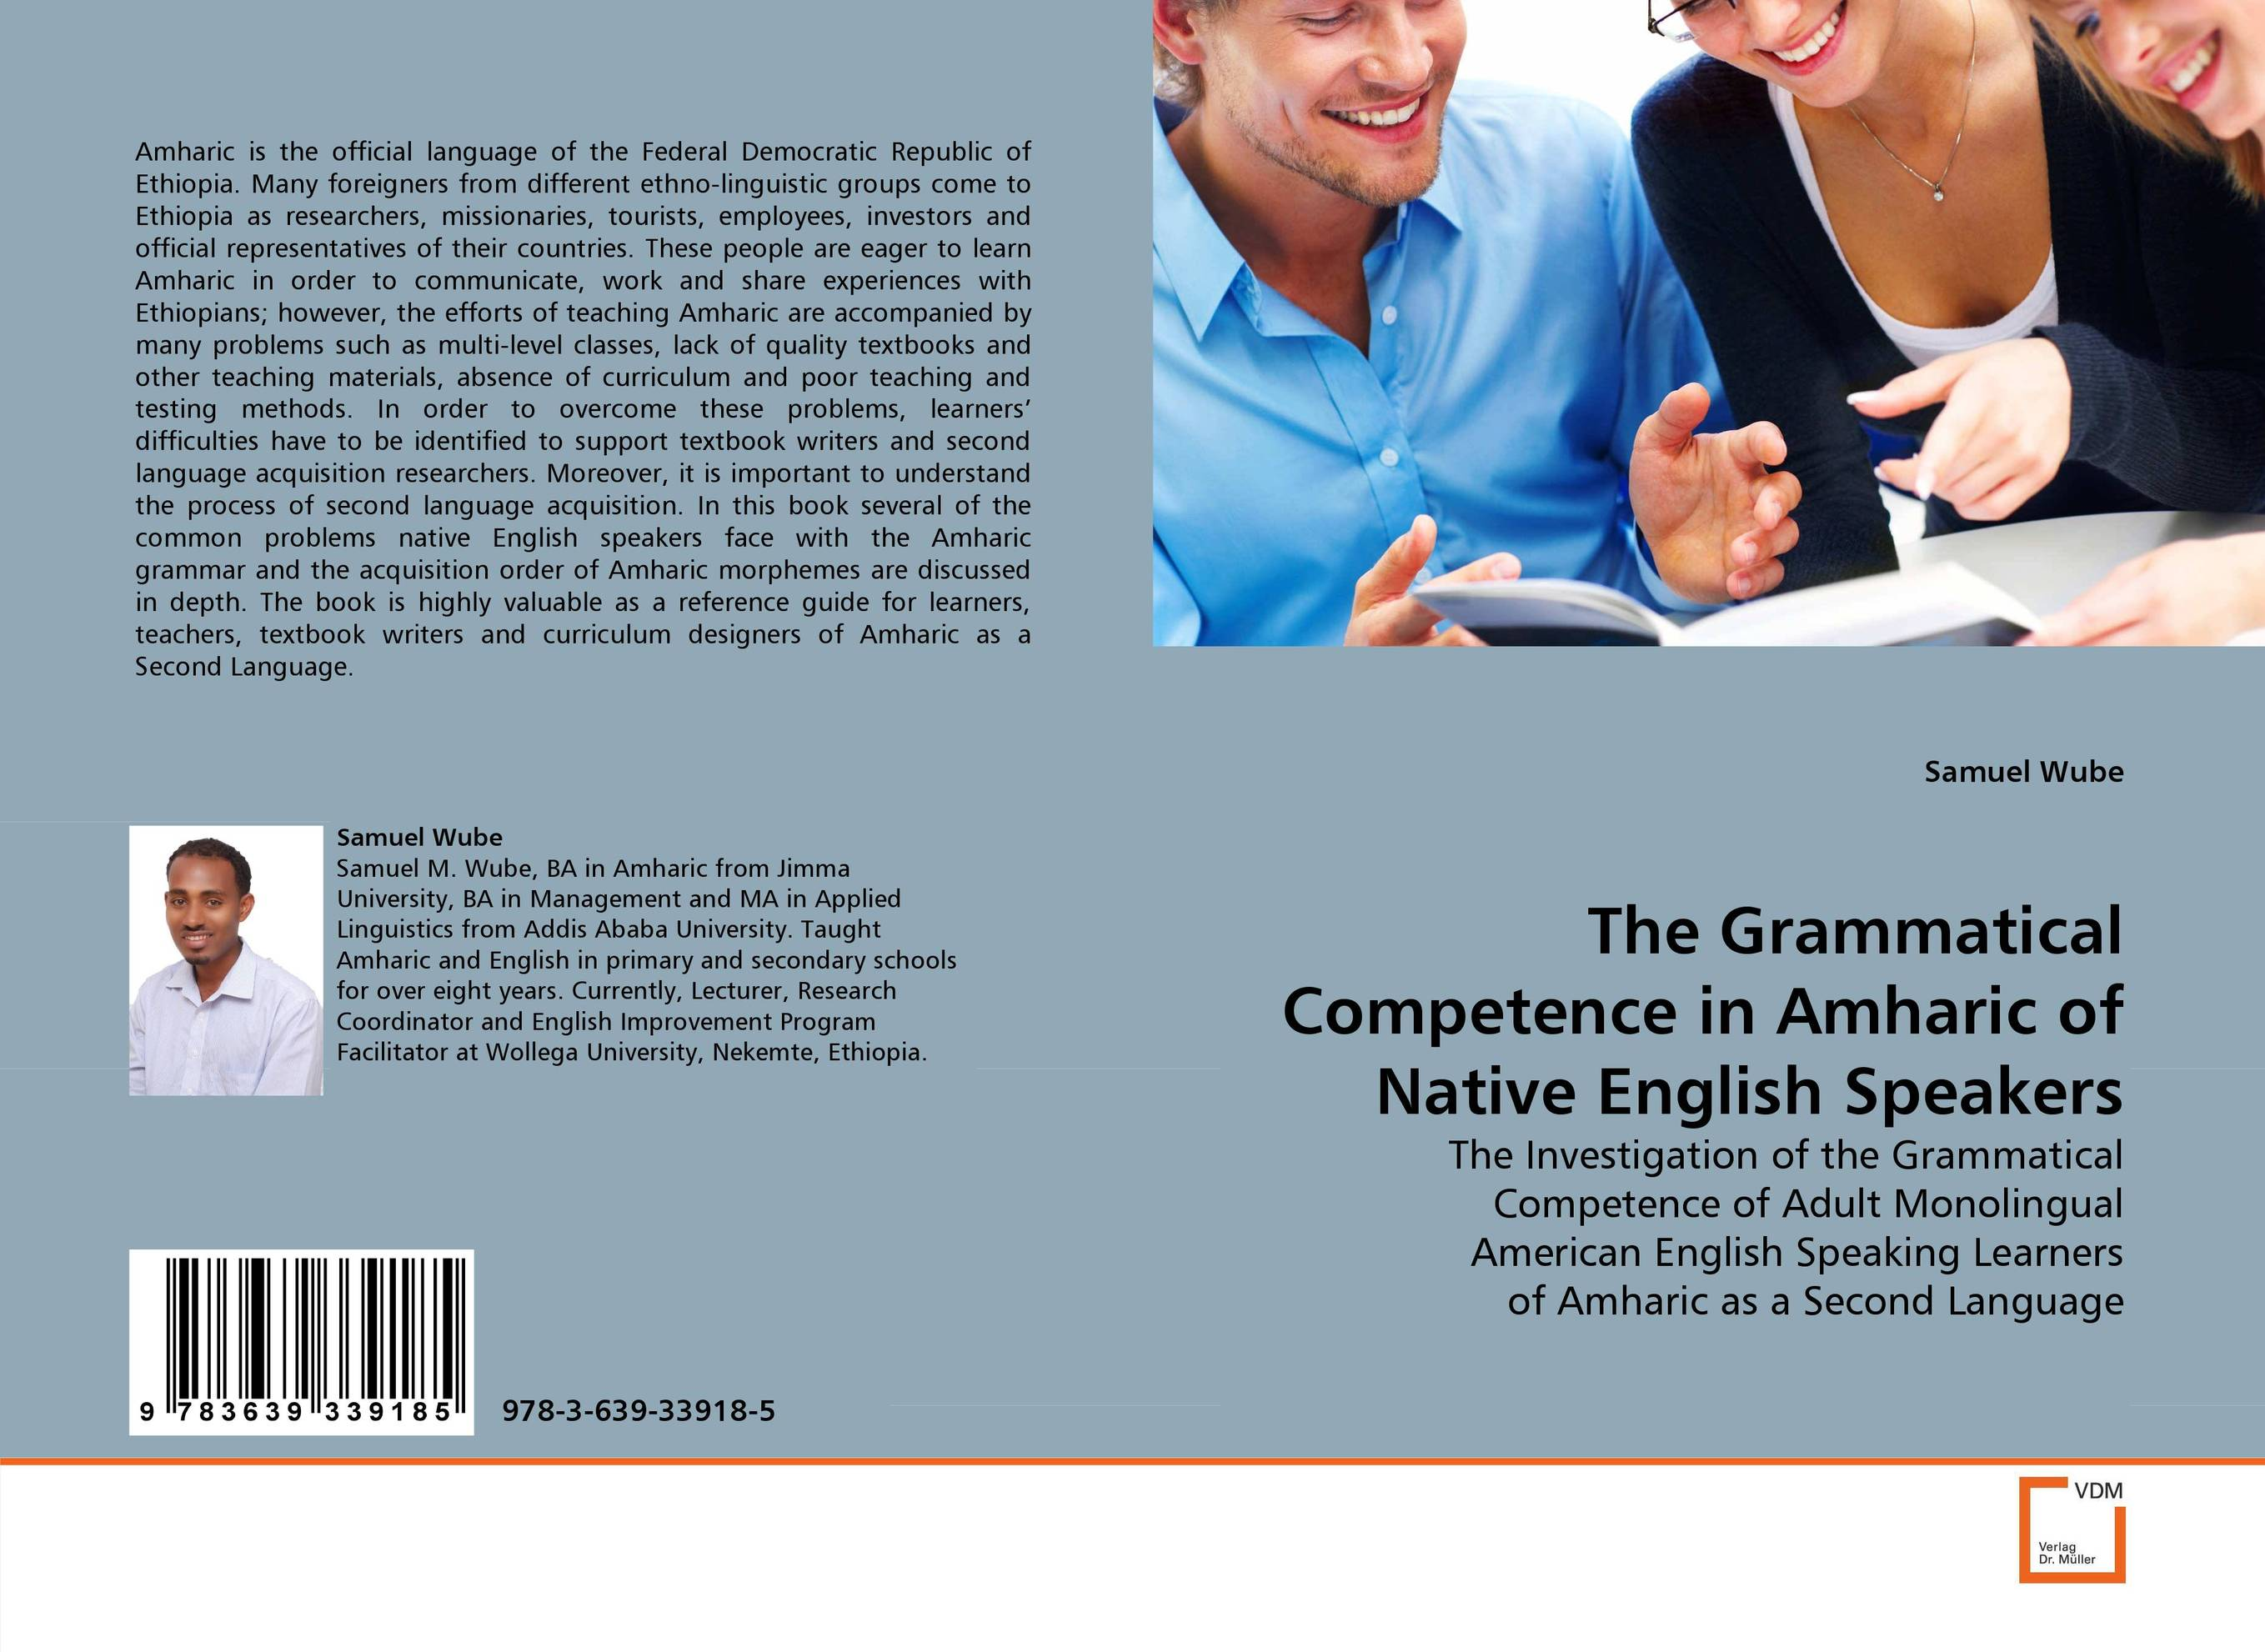 The Grammatical Competence in Amharic of Native English Speakers